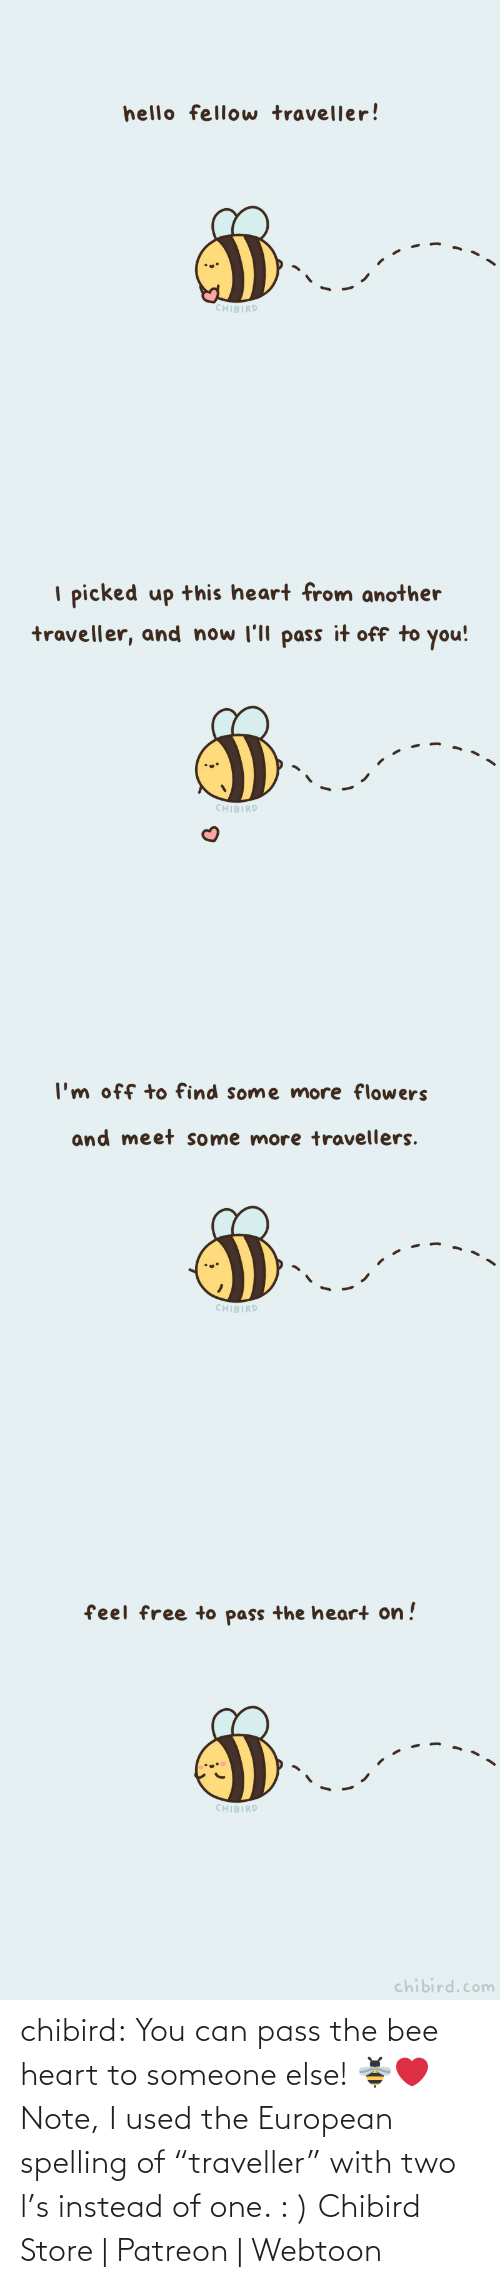 "Someone Else: chibird: You can pass the bee heart to someone else! 🐝❤️️  Note, I used the European spelling of ""traveller"" with two l's instead of one. : )   Chibird Store 